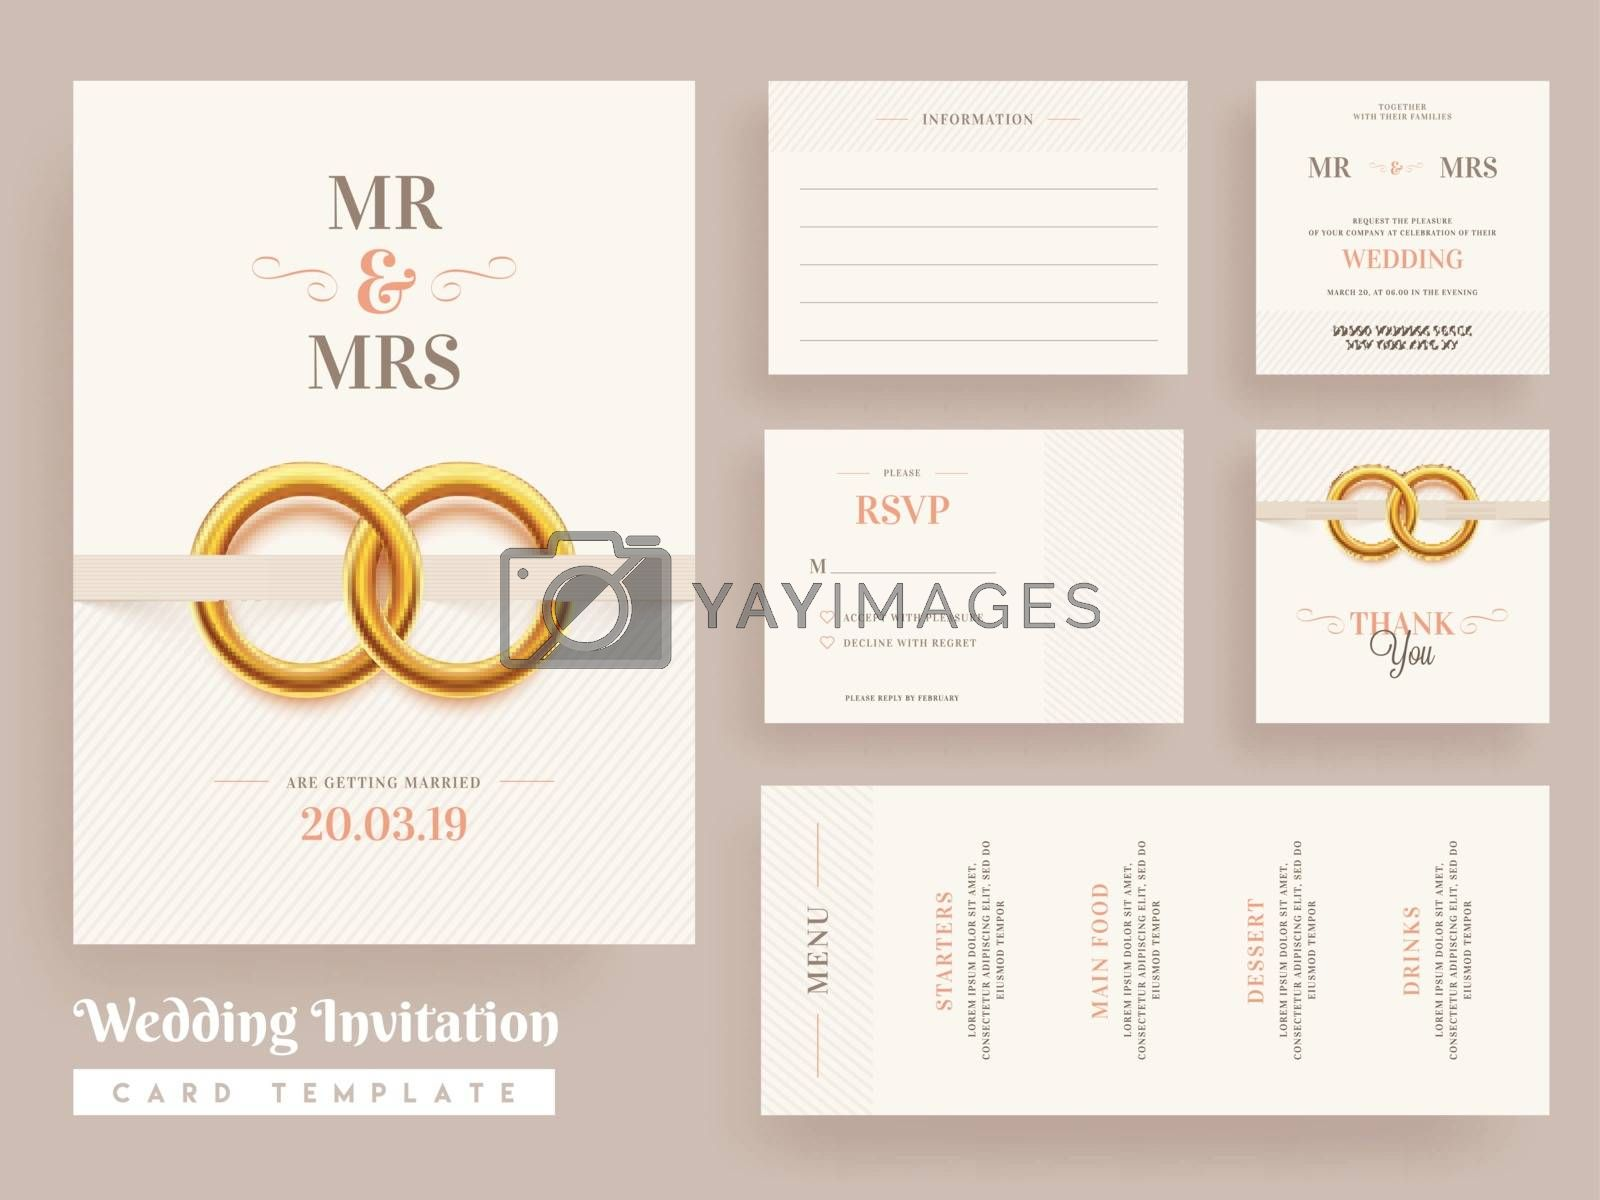 Royalty free image of Wedding Invitation card template design with wedding invite, men by aispl